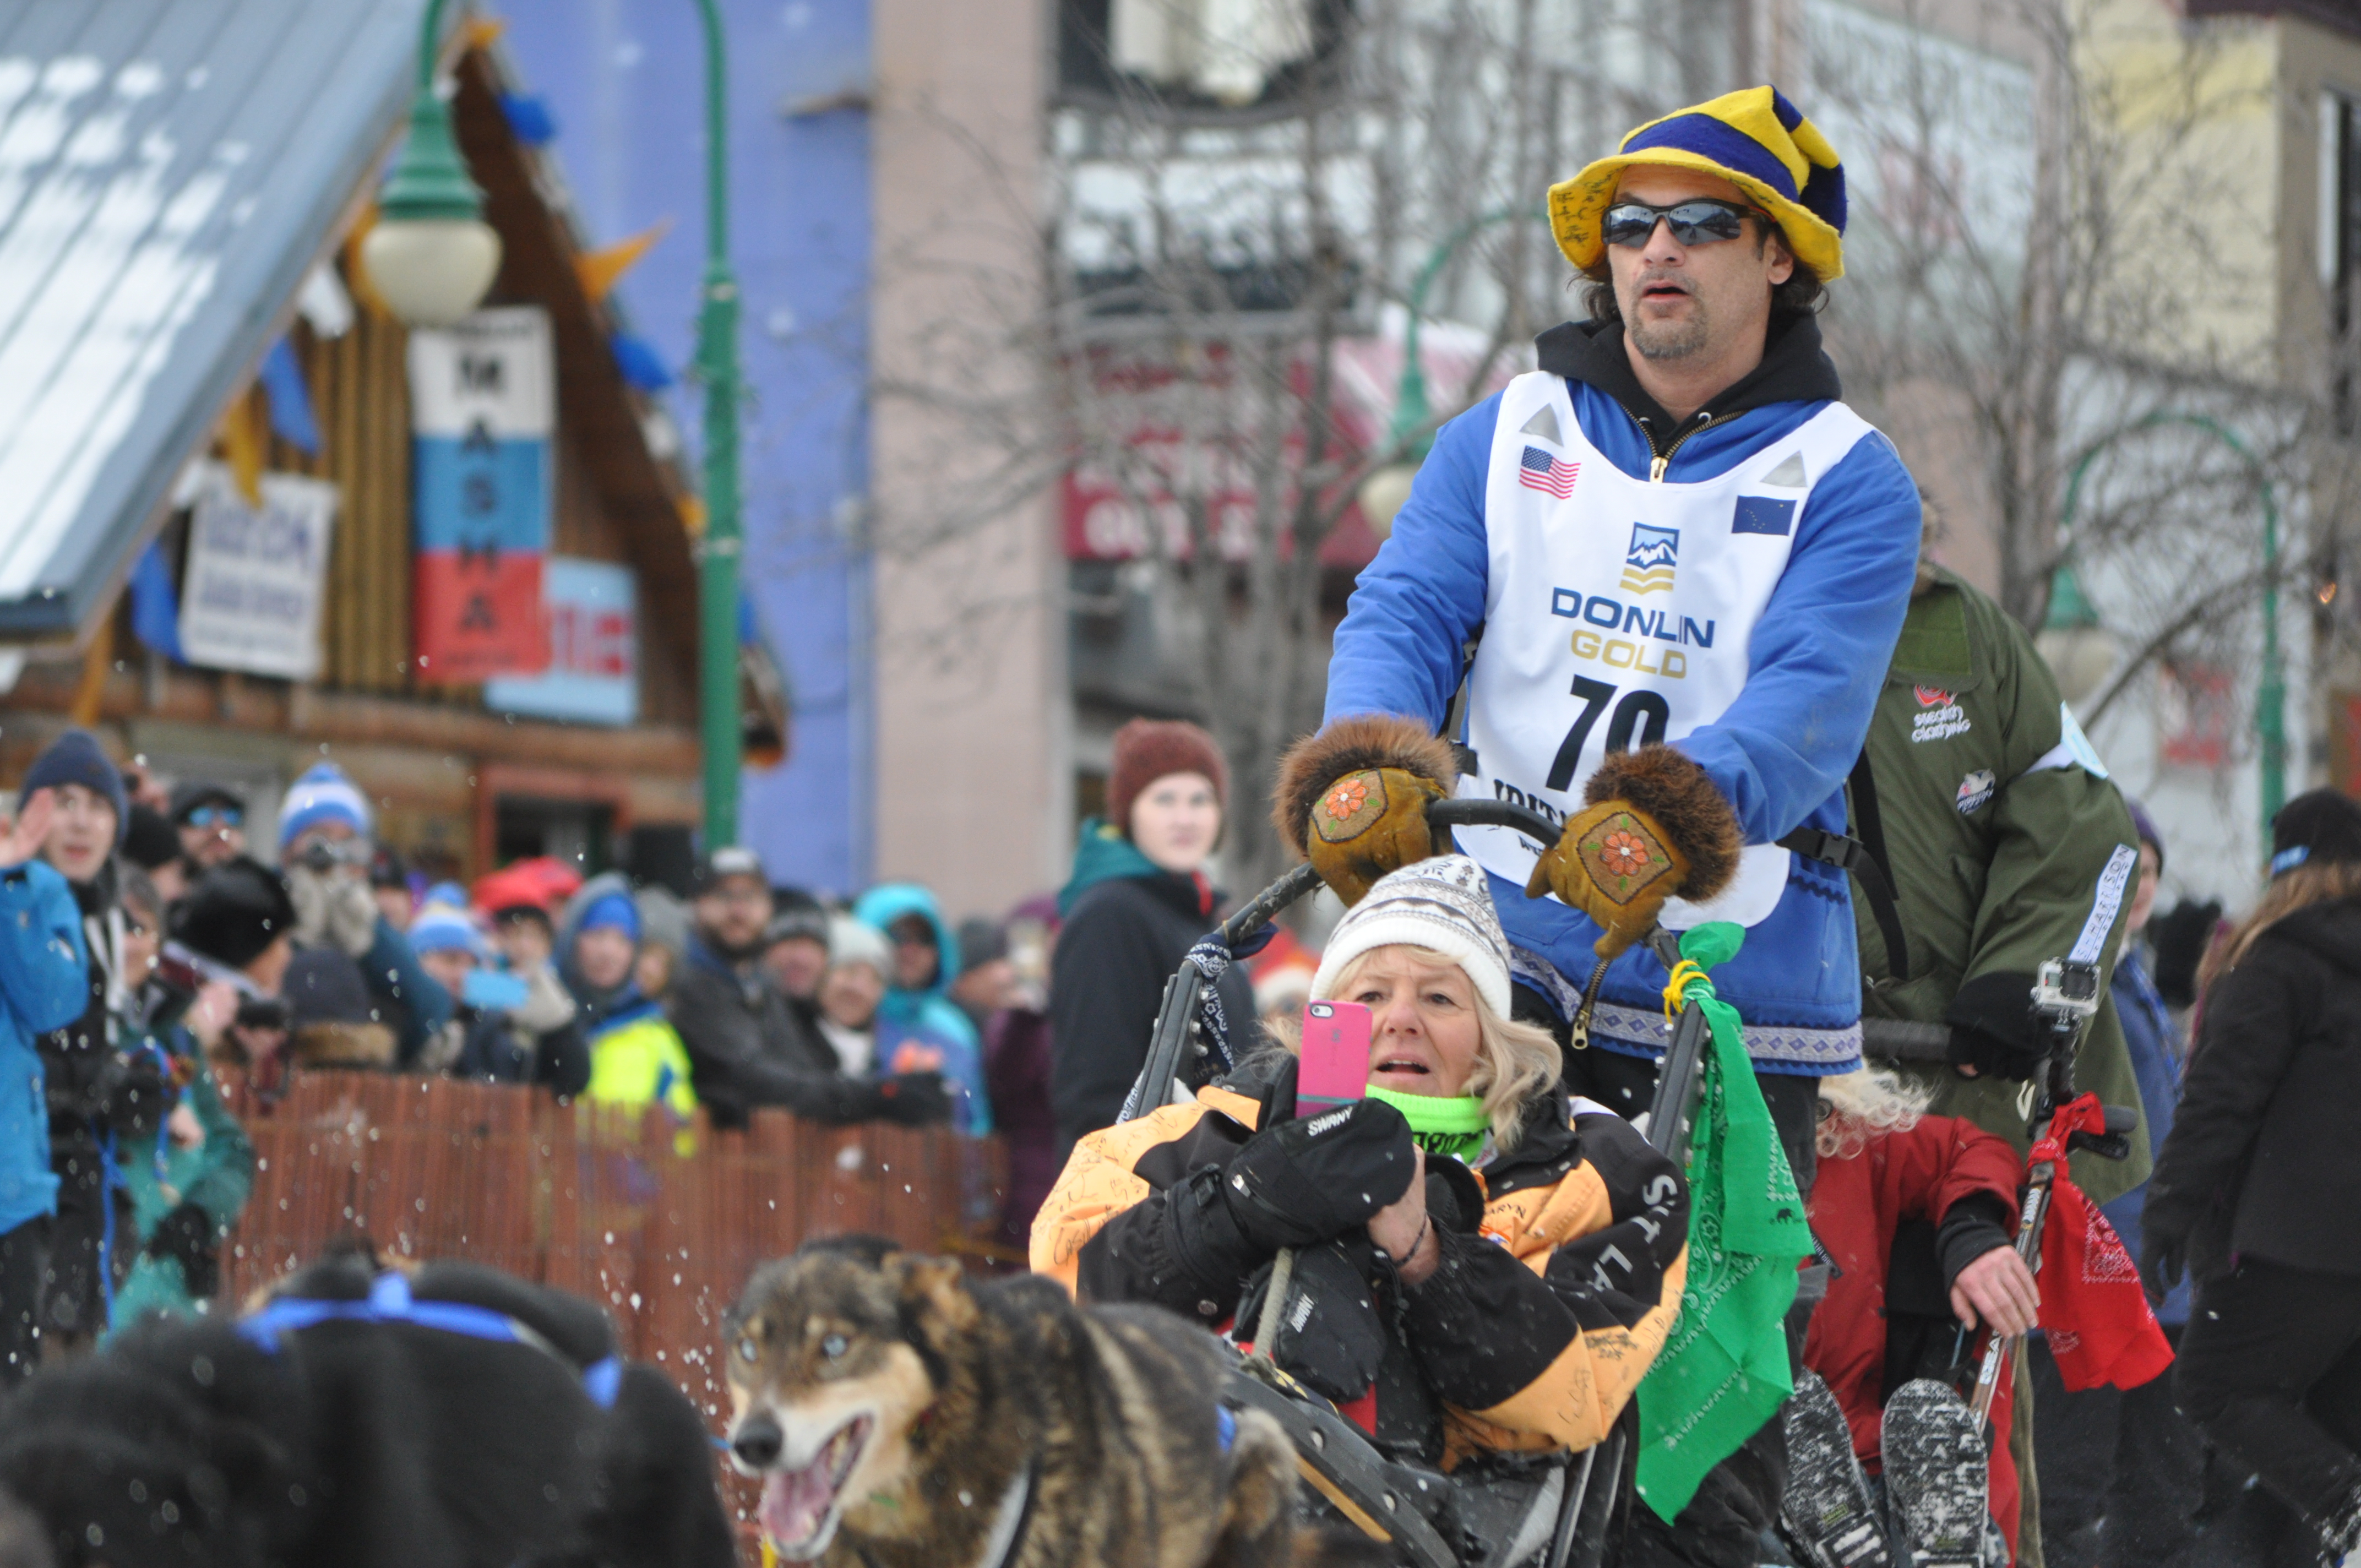 Hugh Neff at the ceremonial Iditarod start. Neff was the first racer out of Rainy Pass. (Photo by Pat Yack, APRN - Anchorage)